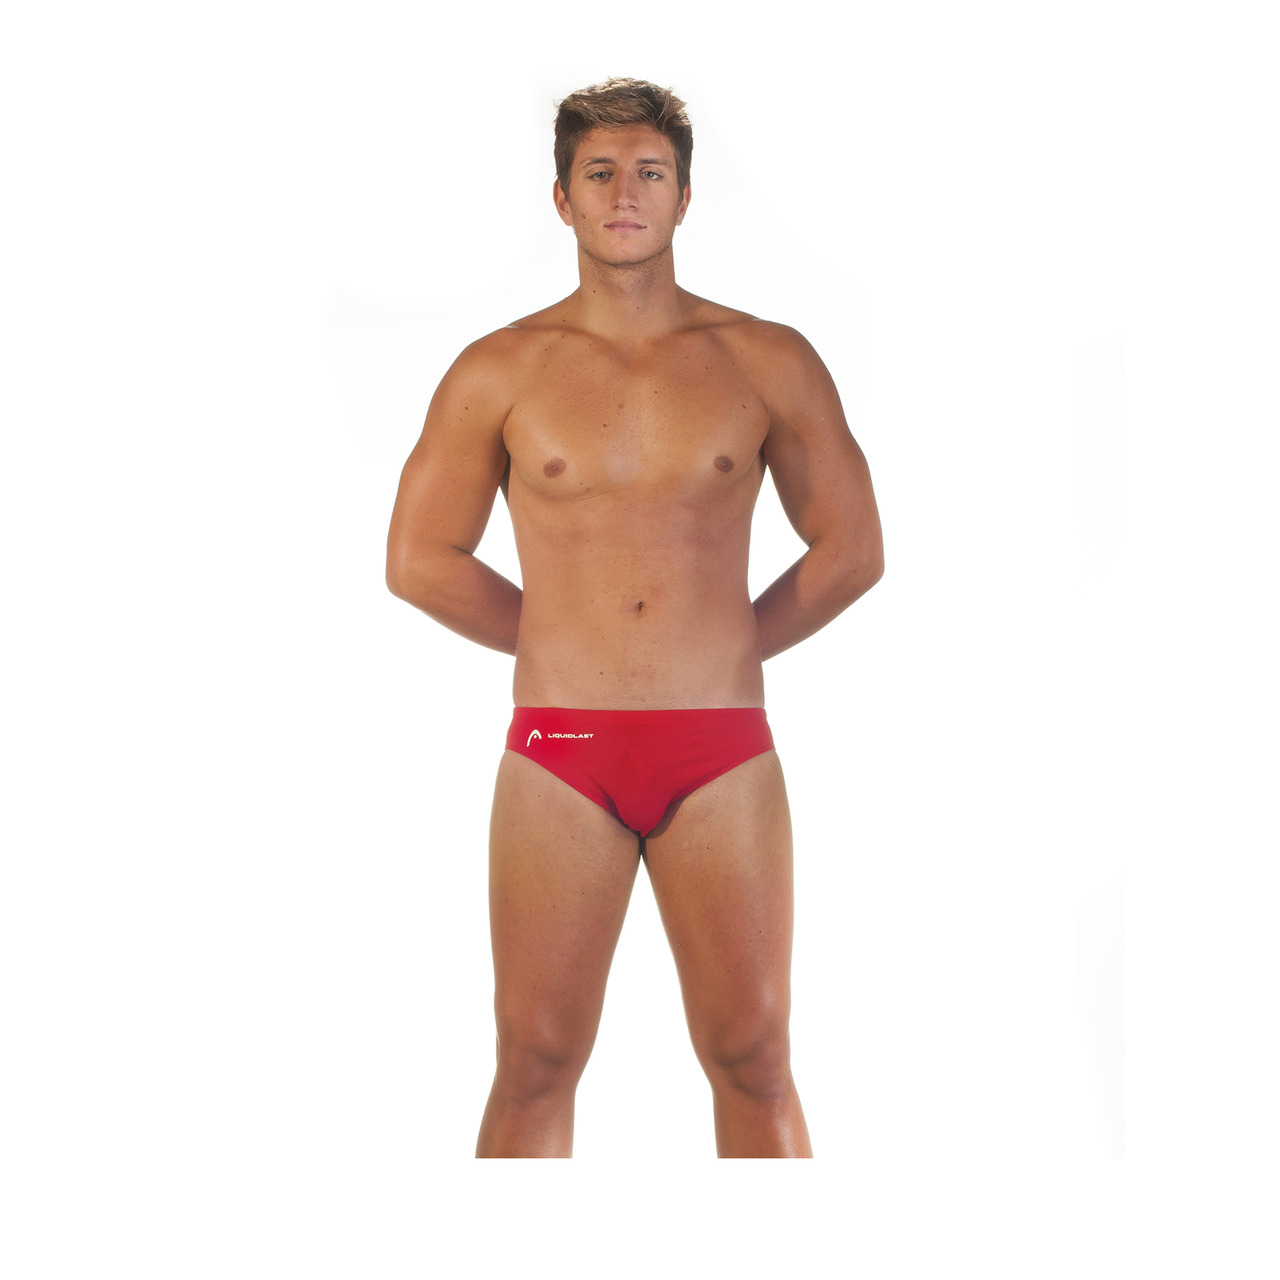 Maillot De Bain Diamond 5 Man - Pbt 48 Rouge Quell Summer Soif